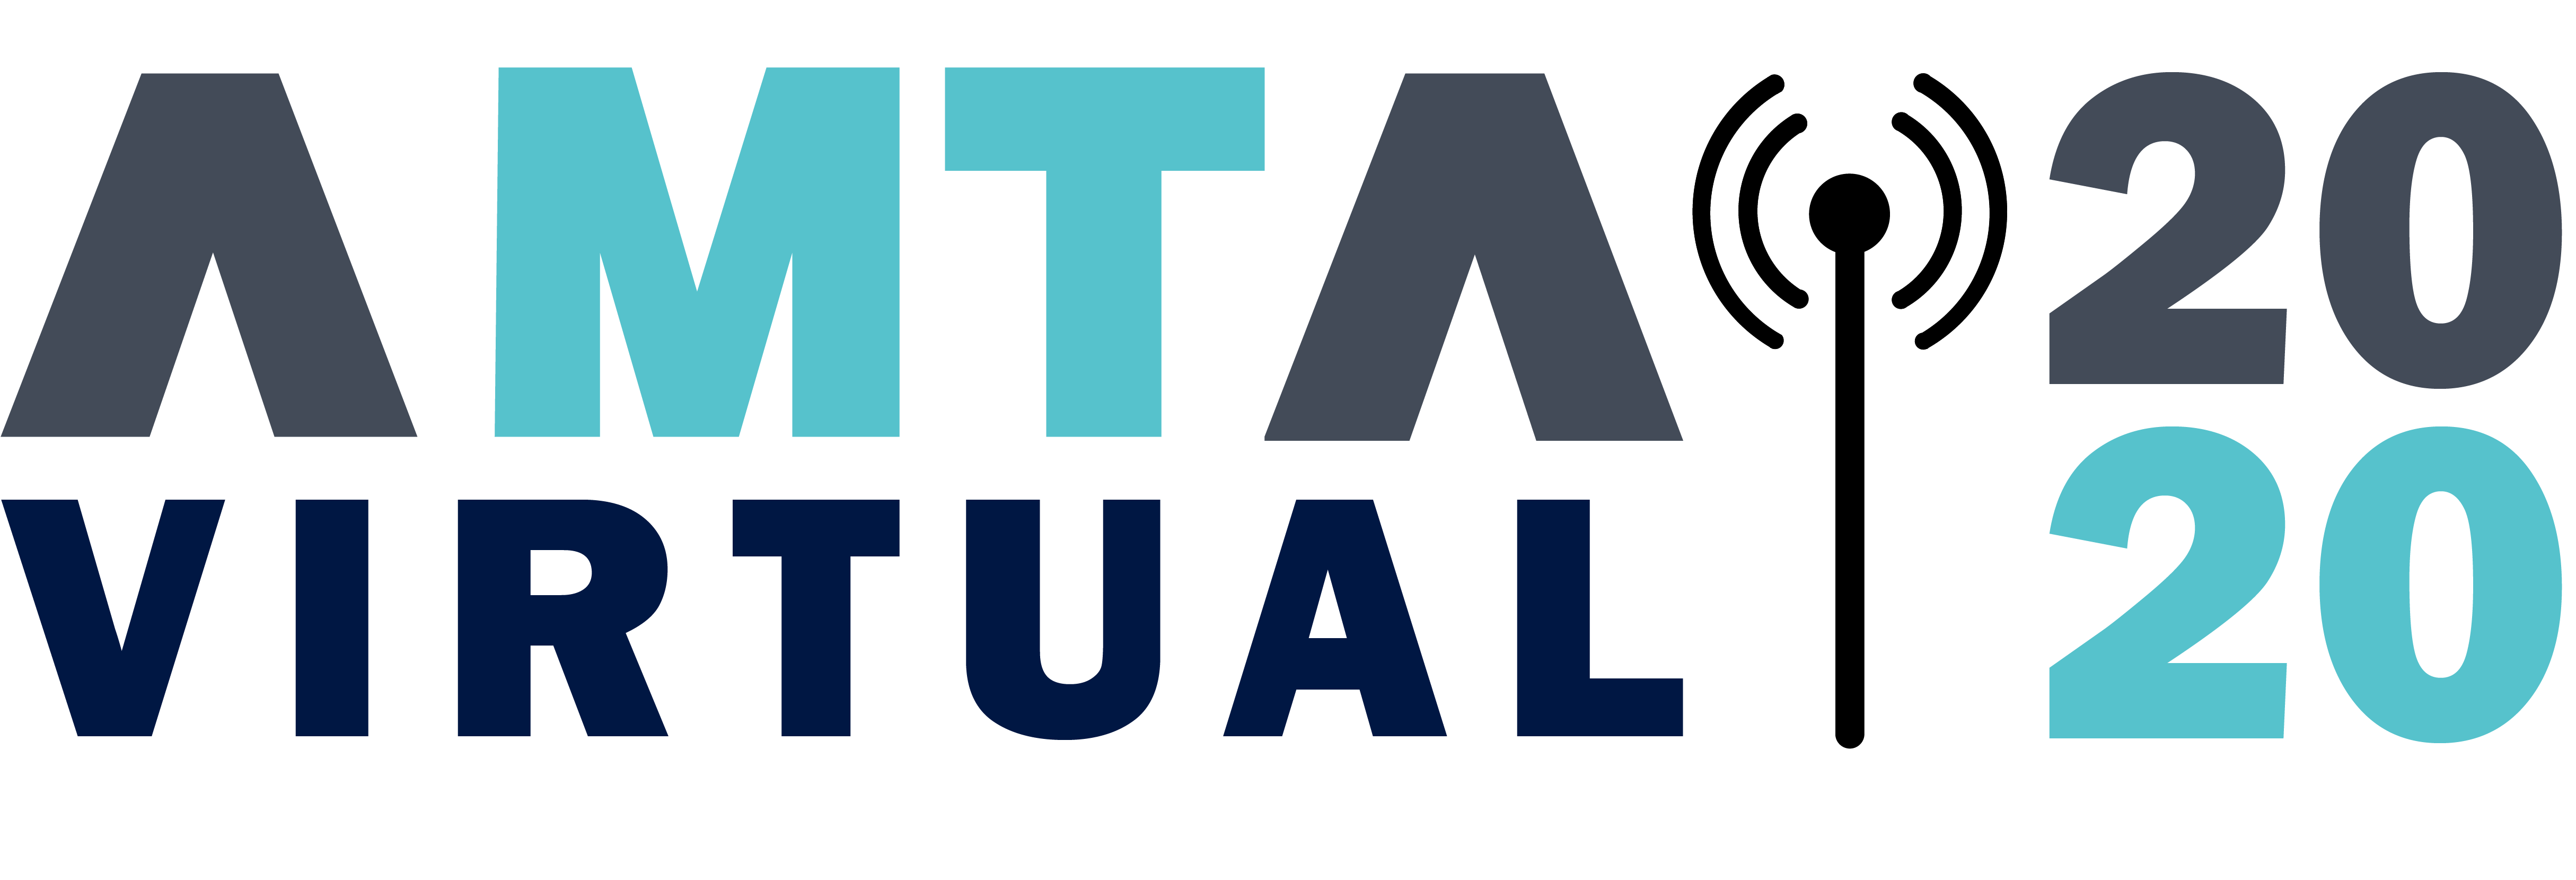 Virtual AMTA 2020: Register Now! Early Registration Discount Ends Sept 28